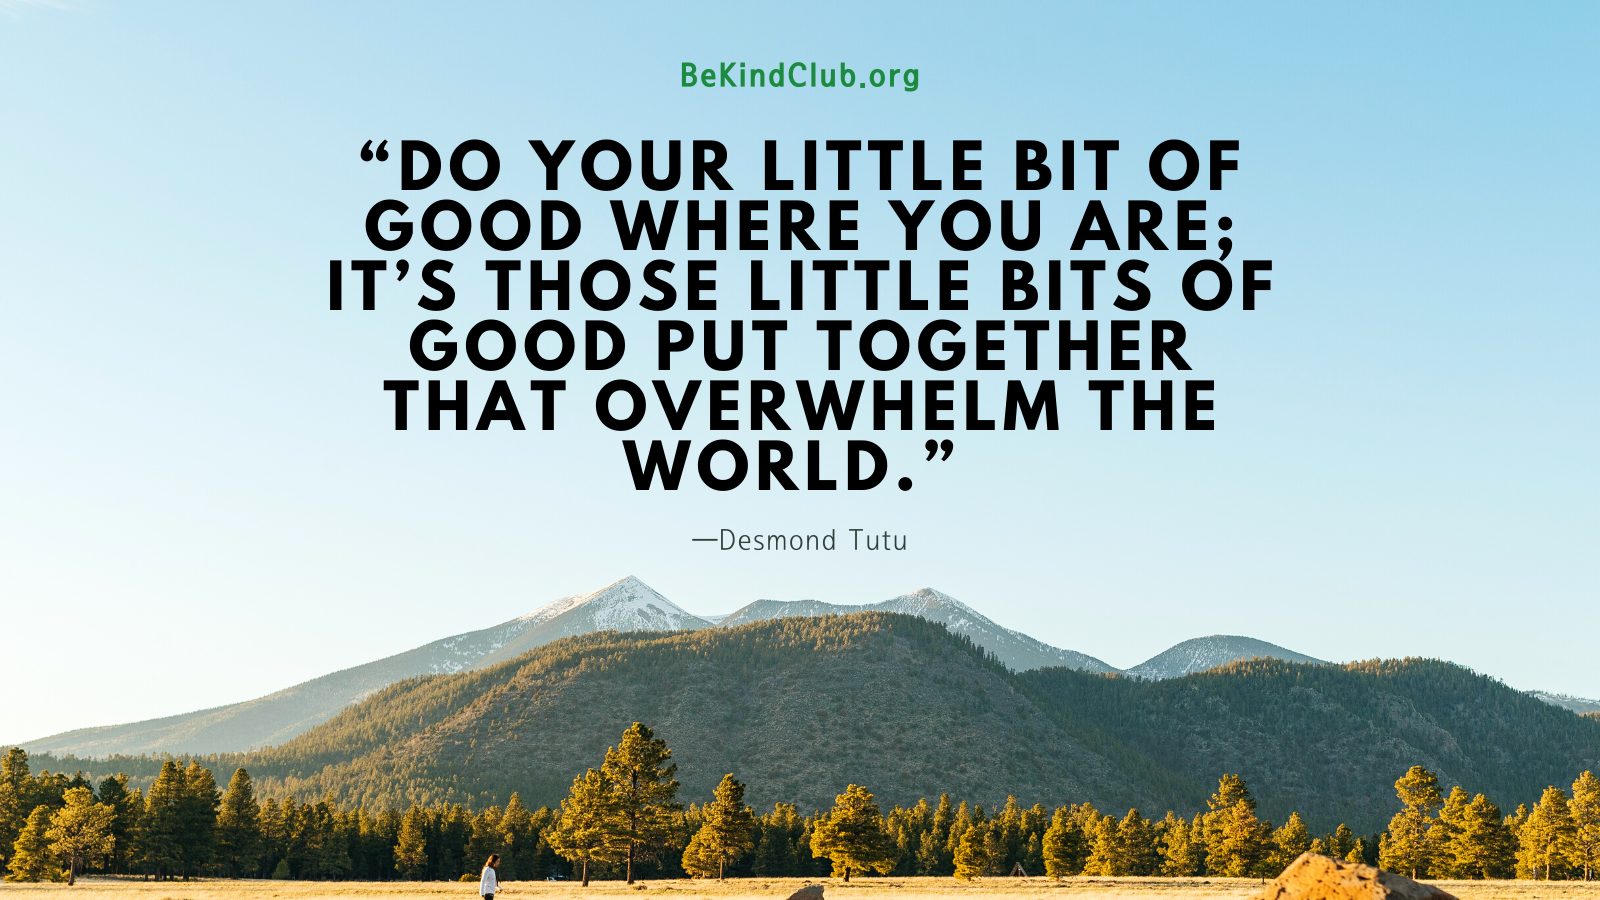 Be Kind Club | The Coalition for Human Kindness